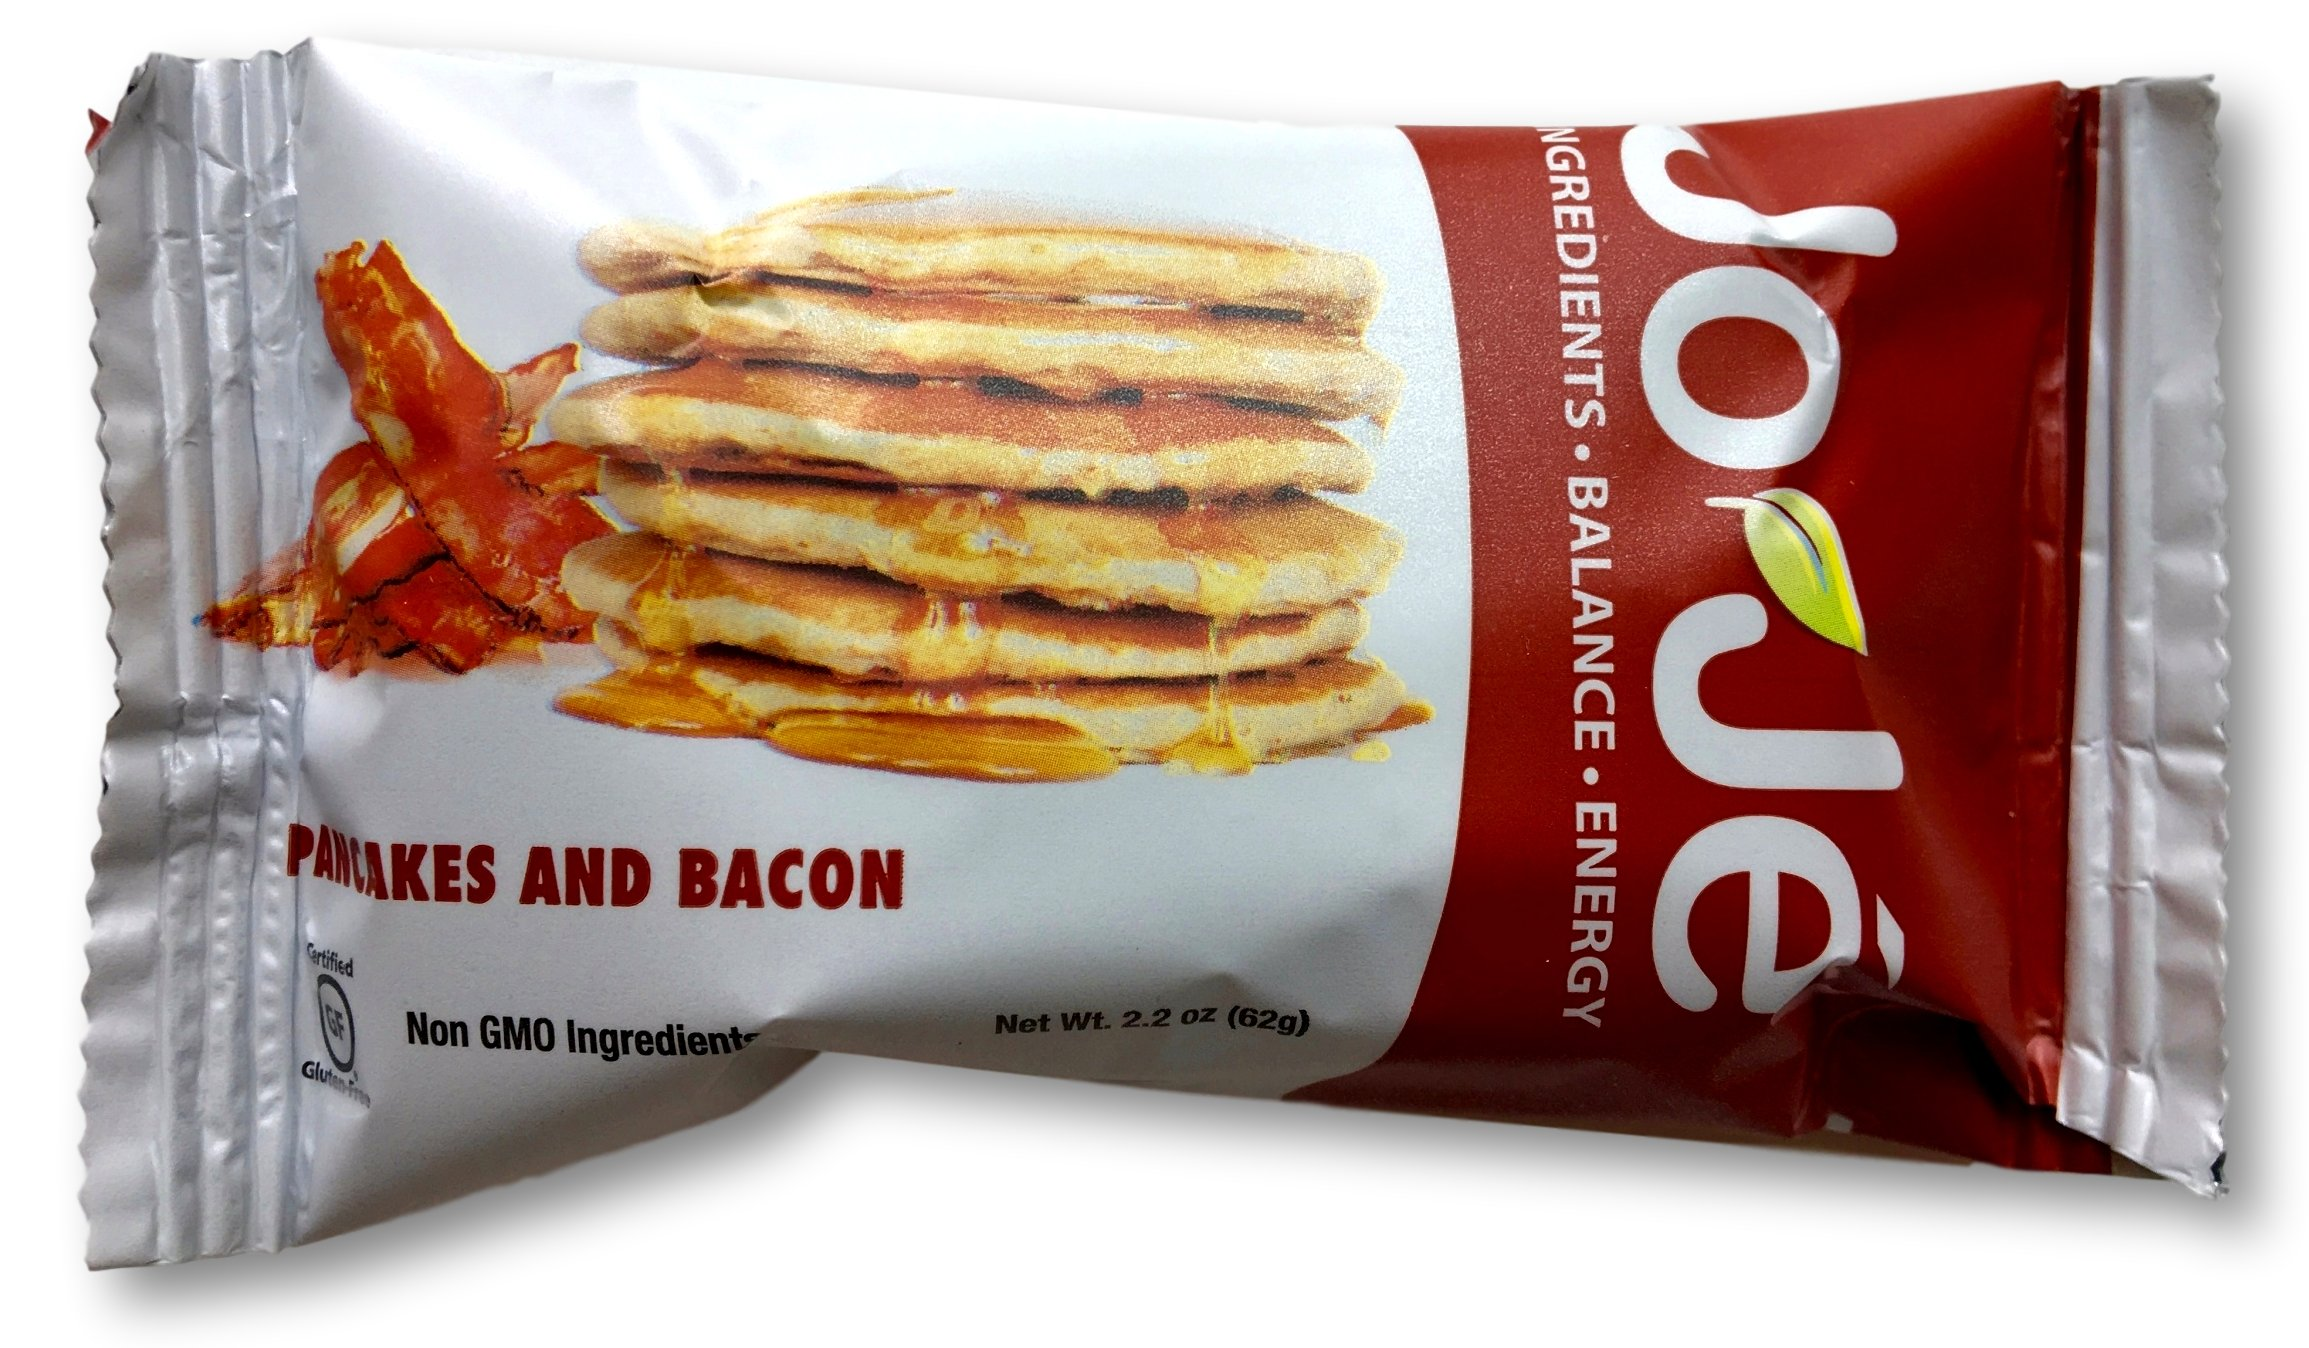 JoJe´ Bars - 12 Bars, 1 Case - Pancakes and Bacon - Gluten Free, GMO Free Energy Bar - All Natural, Organic Ingredients by JOJE'